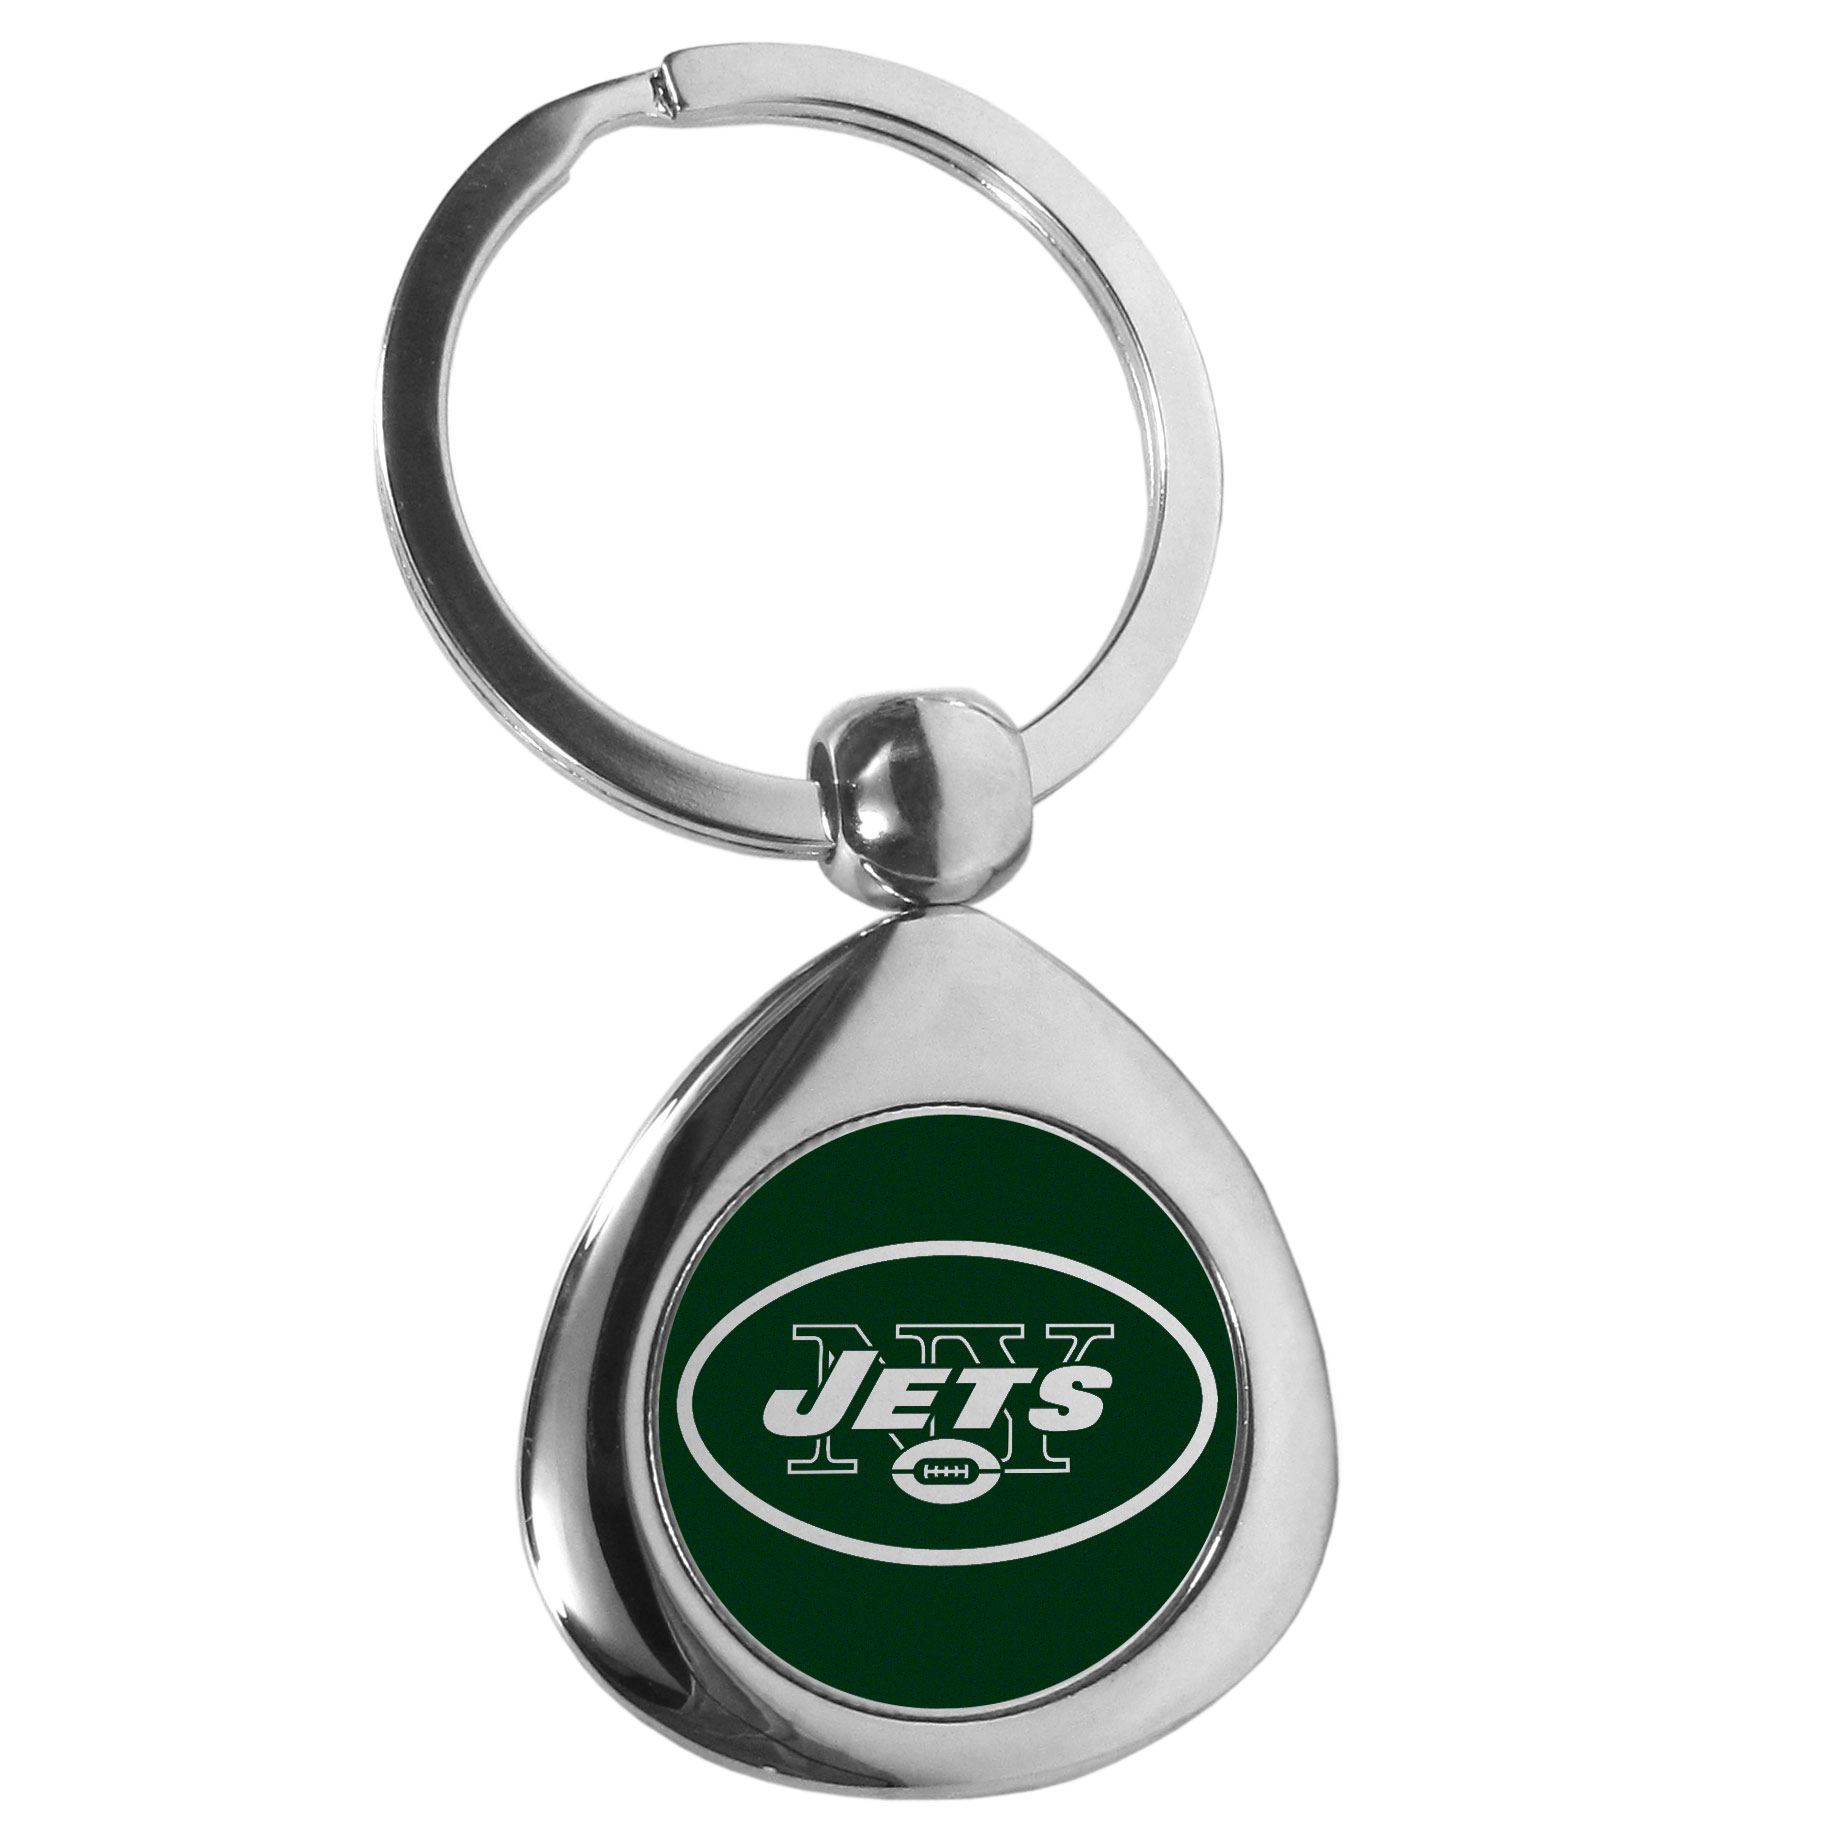 New York Jets Round Teardrop Key Chain - Our high polish chrome New York Jets round teardrop key chain has a classy look with a sporty twist. The high-quality key fob features the team logo in the team's primary color. The key ring is a flat split ring that is easier to load you home and auto keys onto.